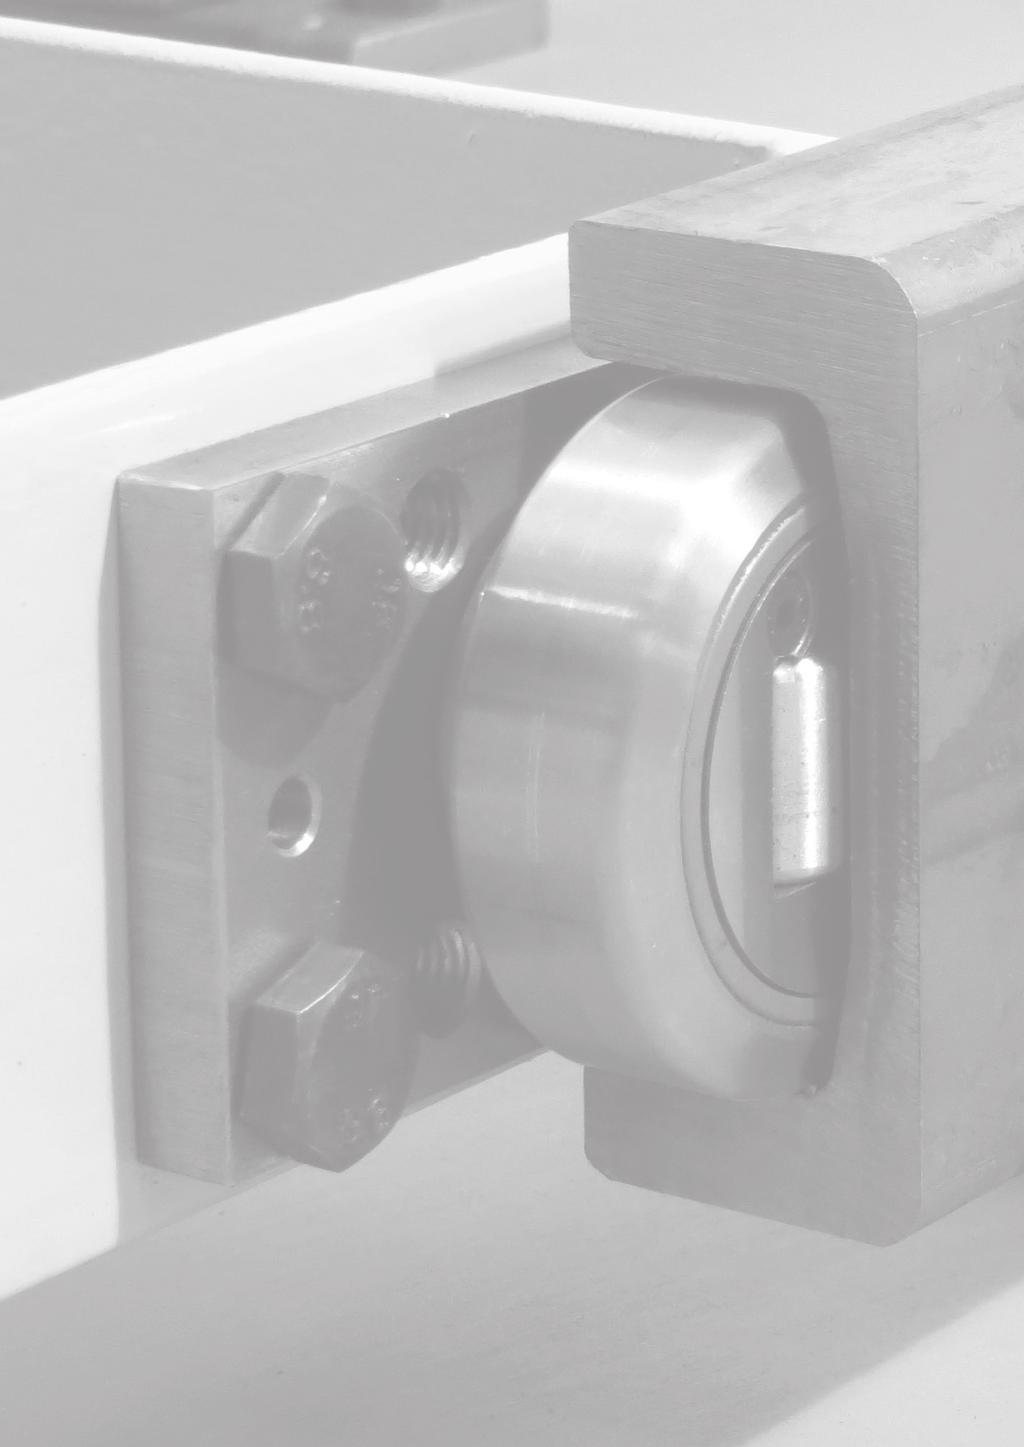 COMBINED ROLLER BEARINGS & MATING STEEL PROFILES